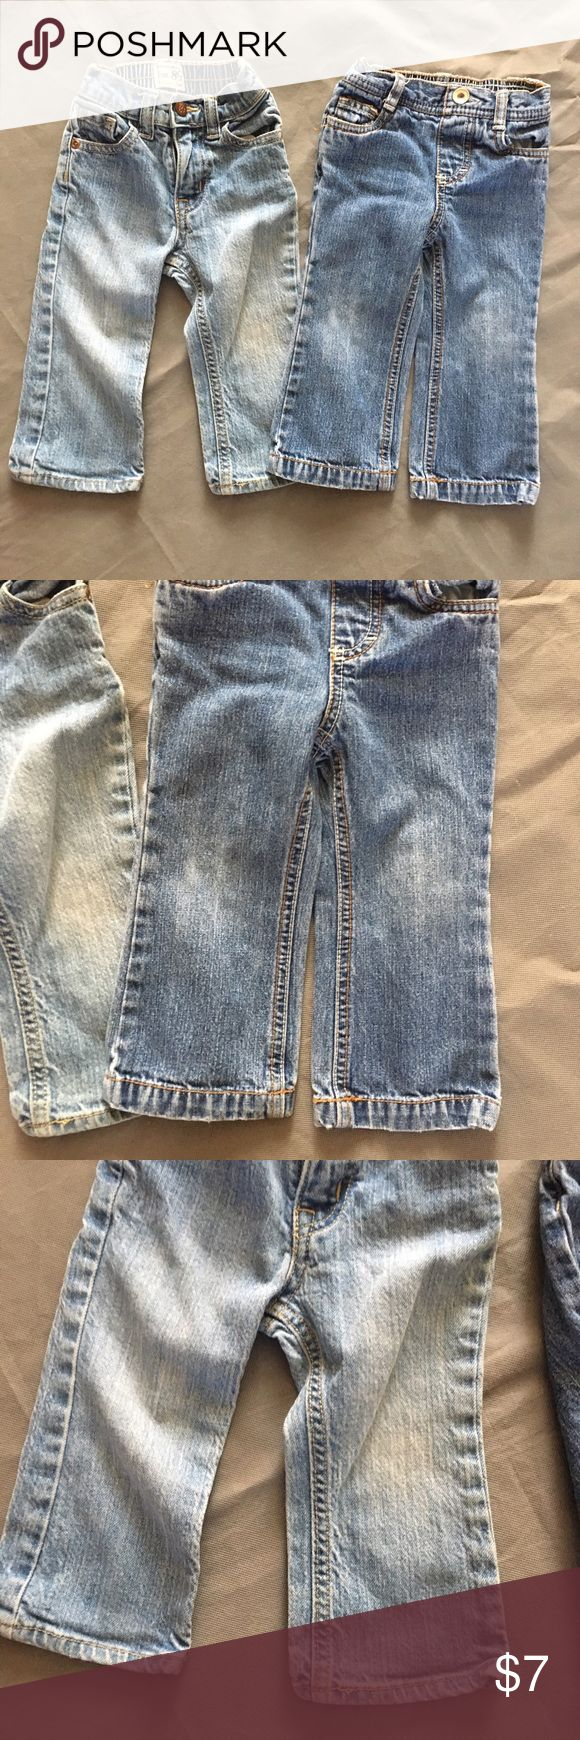 2 pairs Girls Jeans 18 months TCP Cherokee Denim Both are size 18 months. In overall good condition with fading from normal wash wear. Check out our closet for great bundle offers. Price firm unless bundled! Children's Place Bottoms Jeans